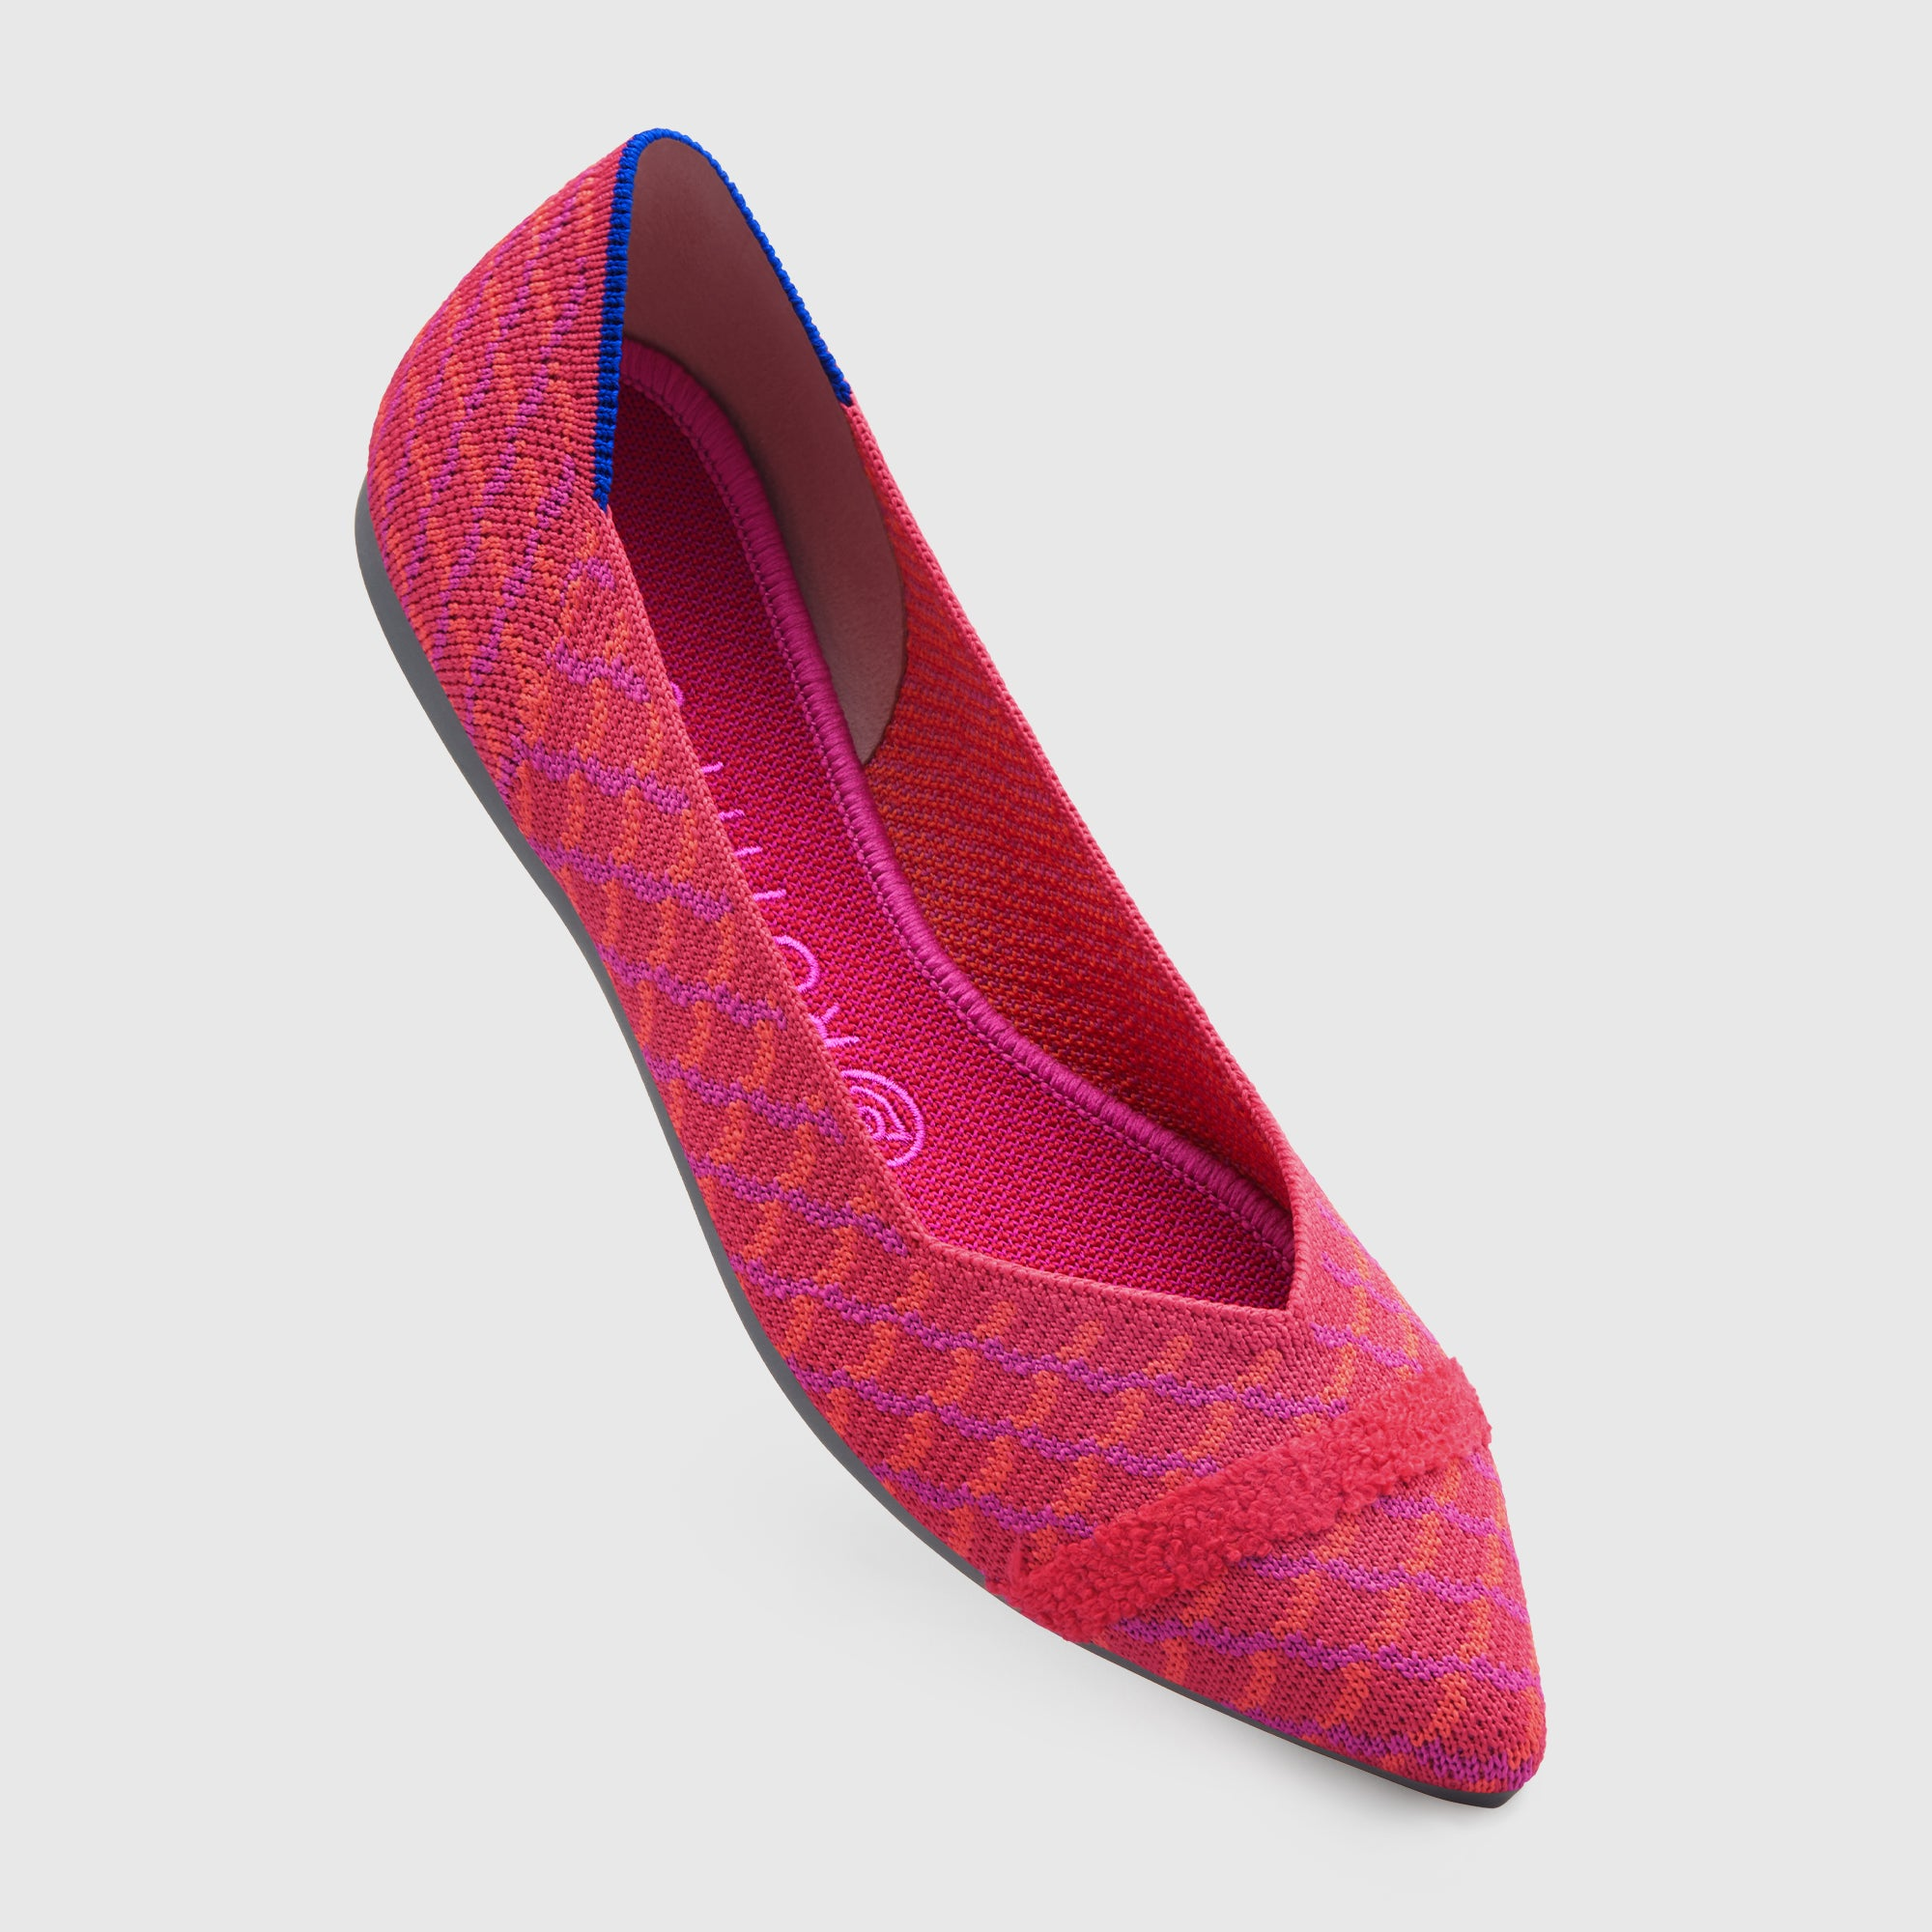 The Point shoe in Pomegranate Grid shown from the front at an angle.